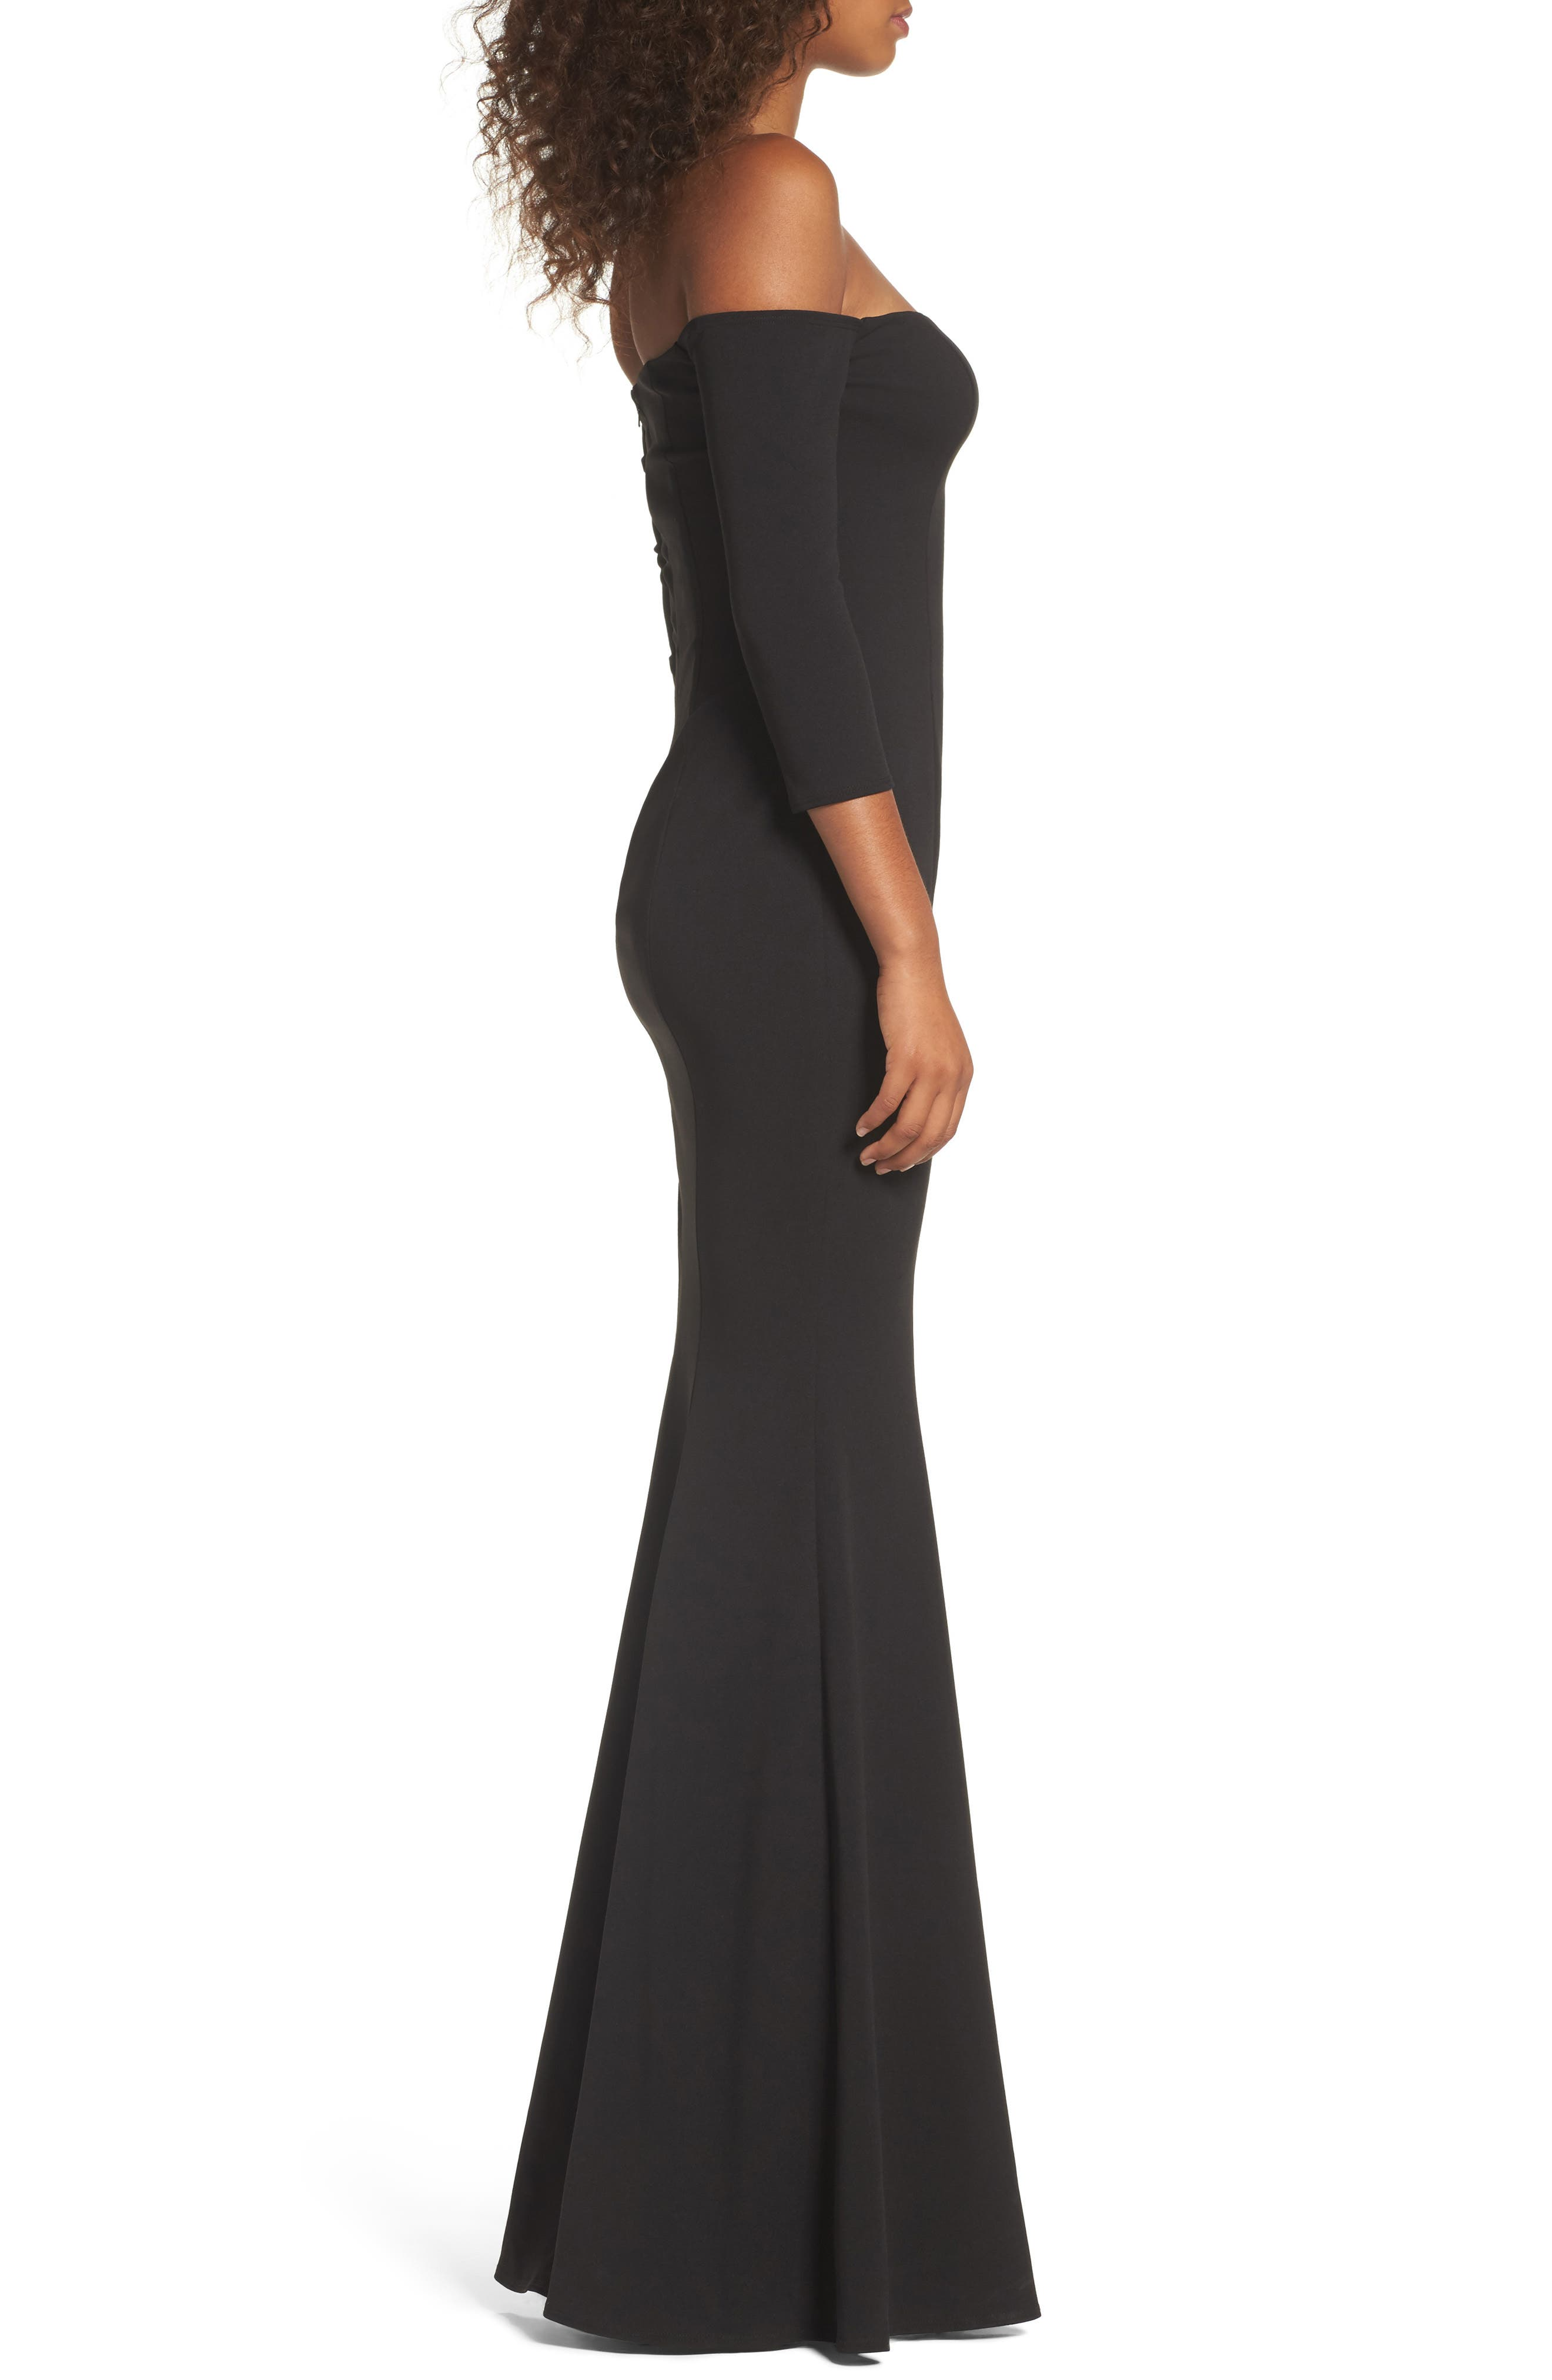 Brentwood Three-Quarter Sleeve Off the Shoulder Gown,                             Alternate thumbnail 3, color,                             BLACK